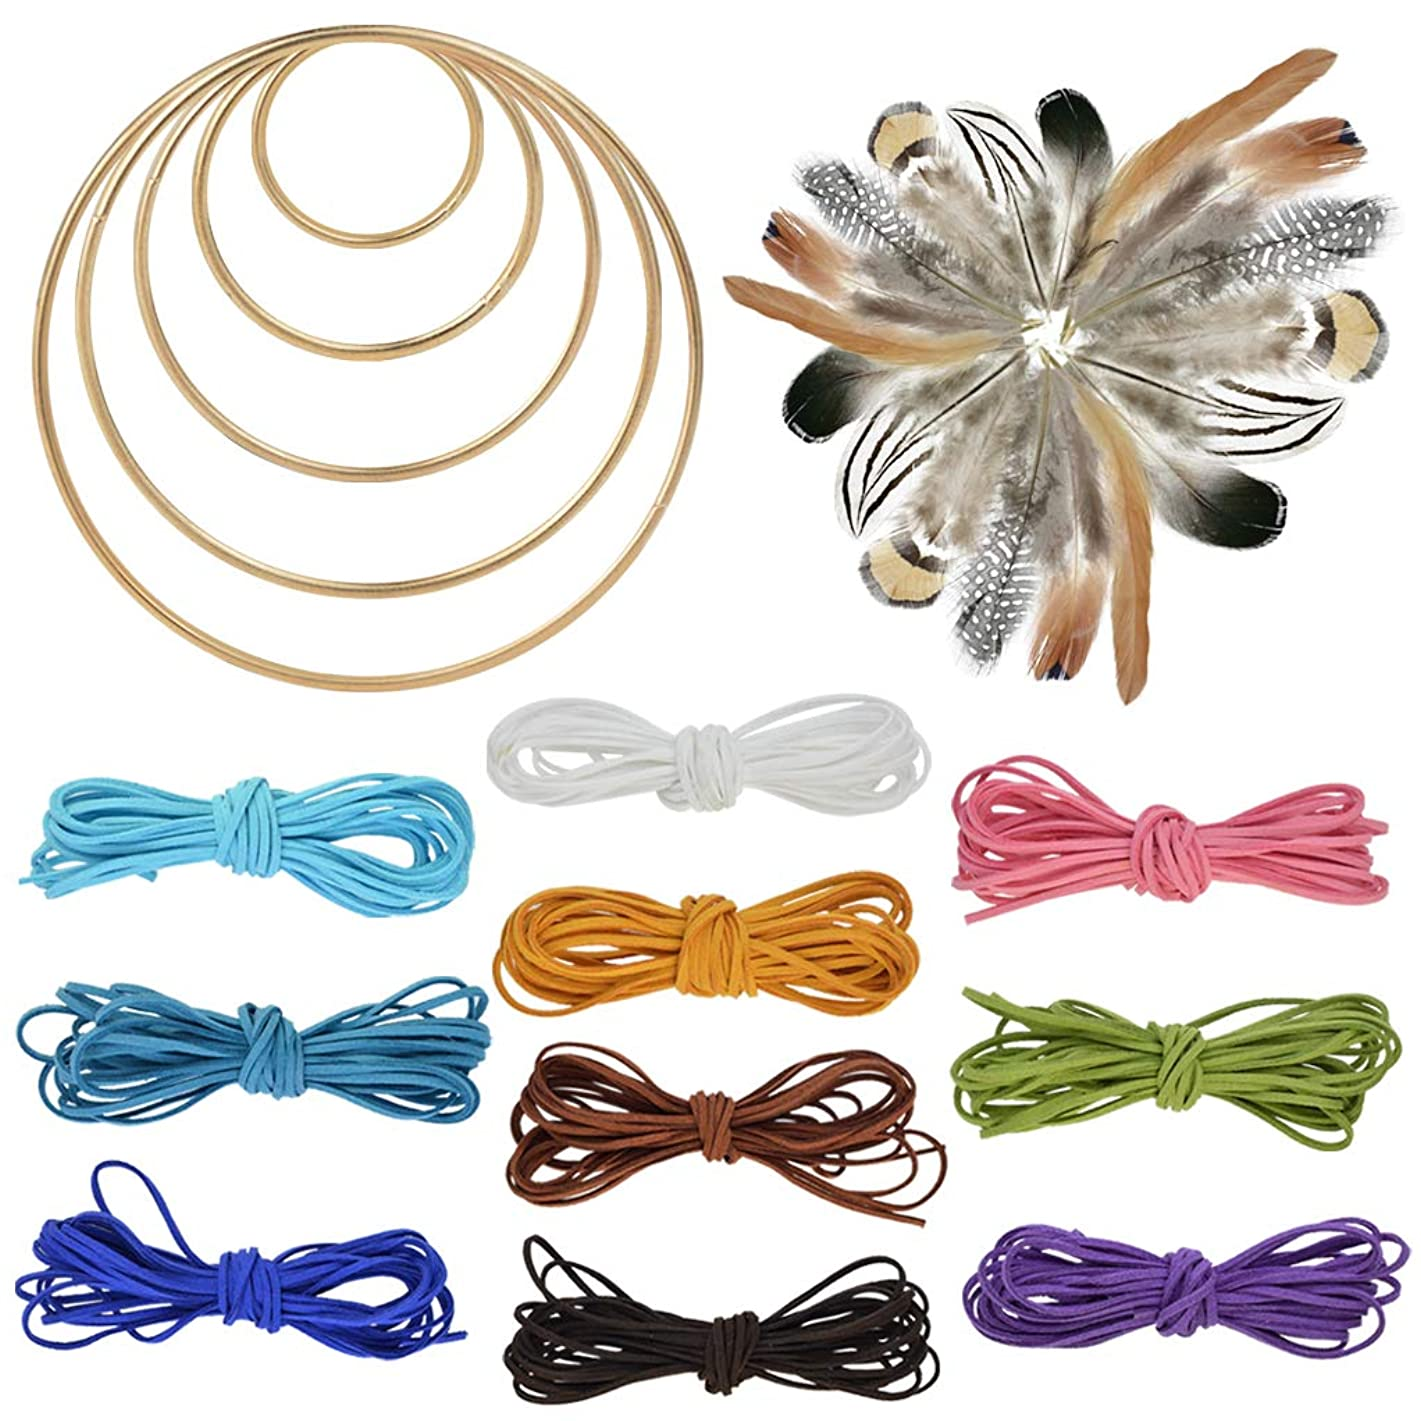 Nydotd 125Pcs Dream Catcher Making Kit, 15 Pcs Metal Rings Hoops Macrame Ring in 5 Size Gold, 100pcs 6 Styled Feathers, 10 Pcs 3 mm Faux Suede Cord String for Dream Catcher Crafts Birthday Party